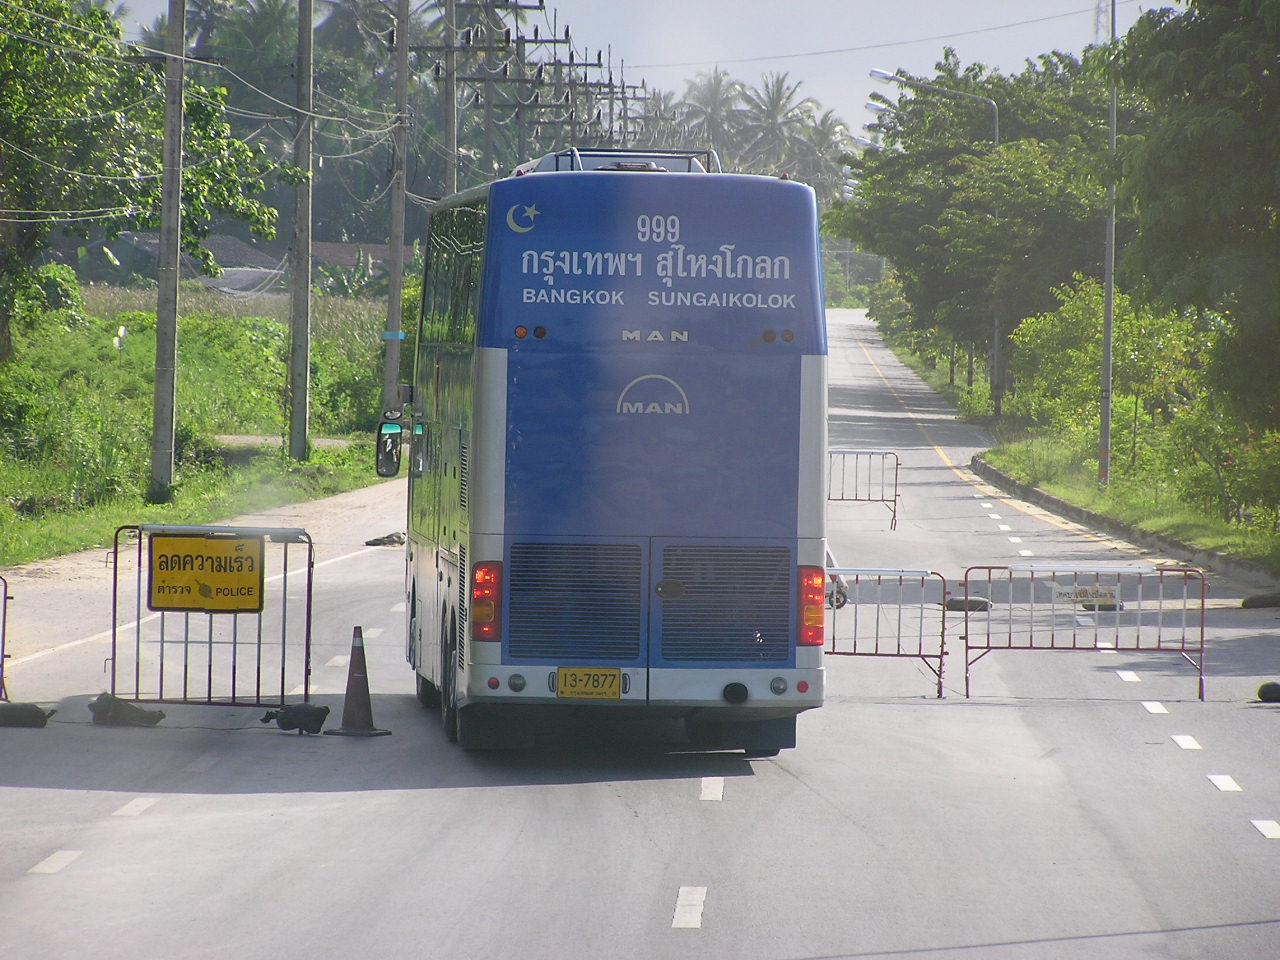 Sg Golok - Bangkok express bus travels 1100 km one way.